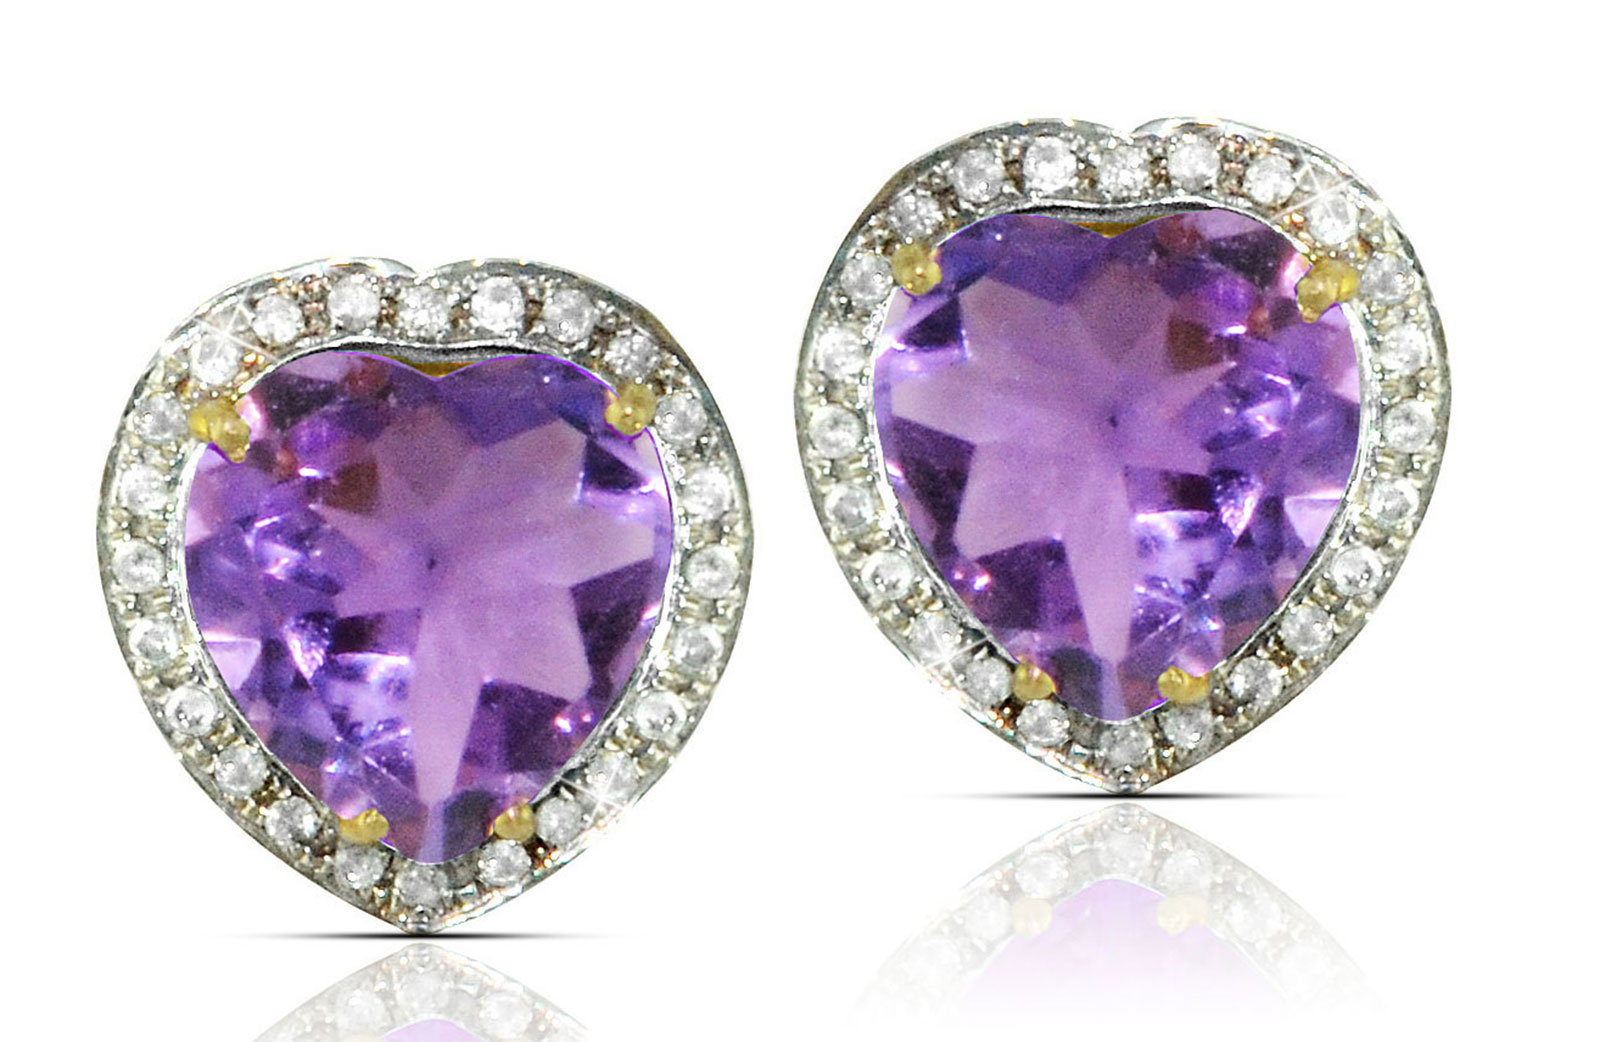 Vera Perla  18k  Gold 10mm Genuine Heart  Cut Amethyst 0.28Ct Genuine Diamonds earrings